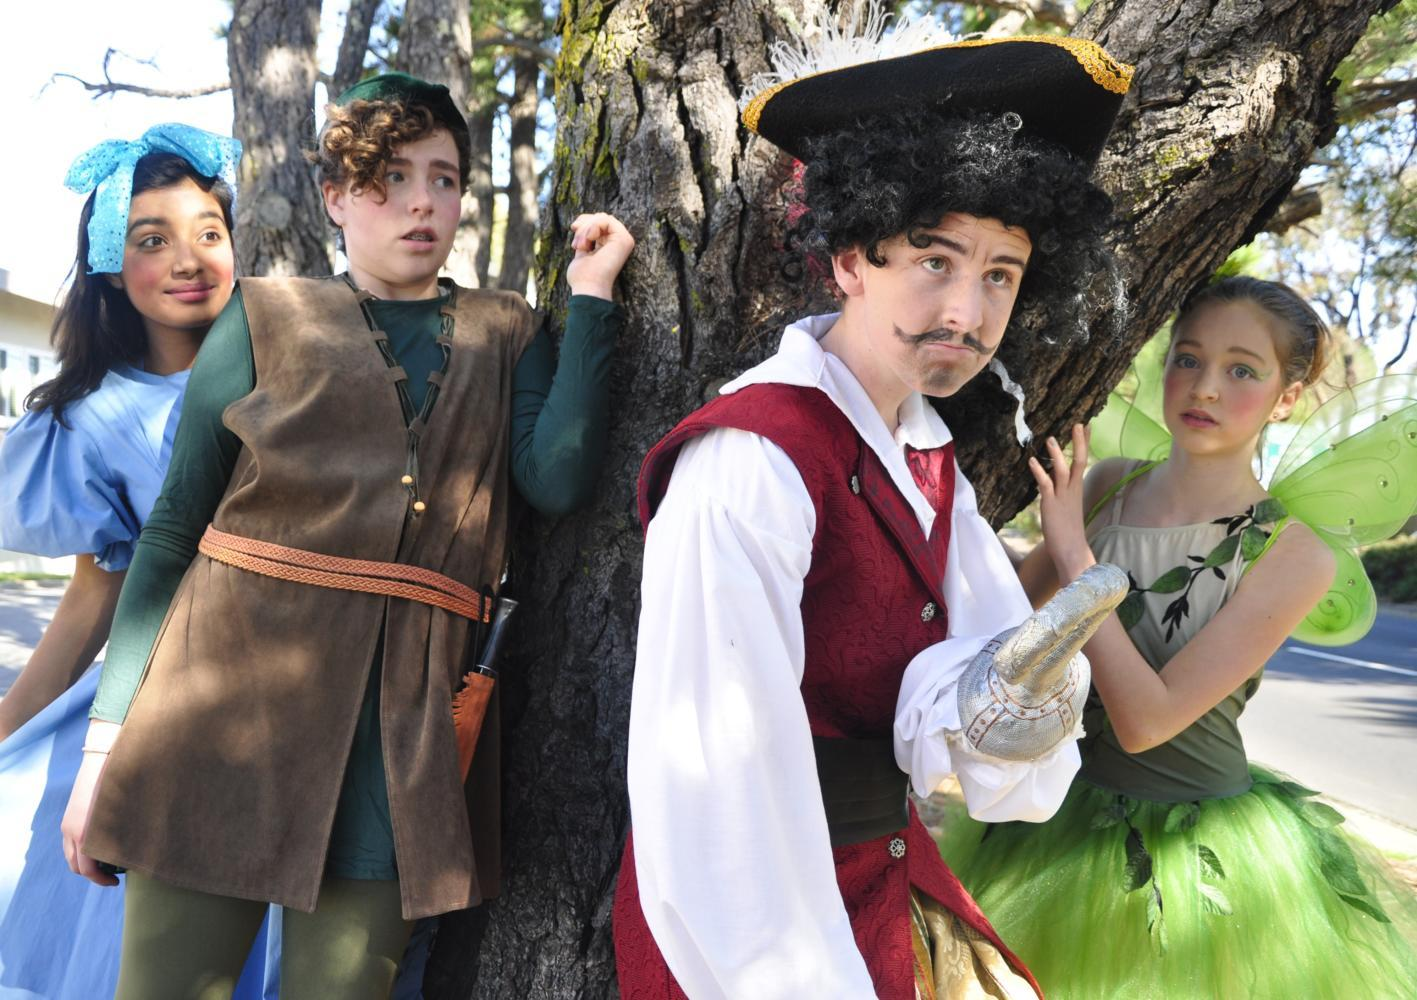 """From April 28 through April 30, Ralston Middle School performed the musical """"Peter Pan Jr."""